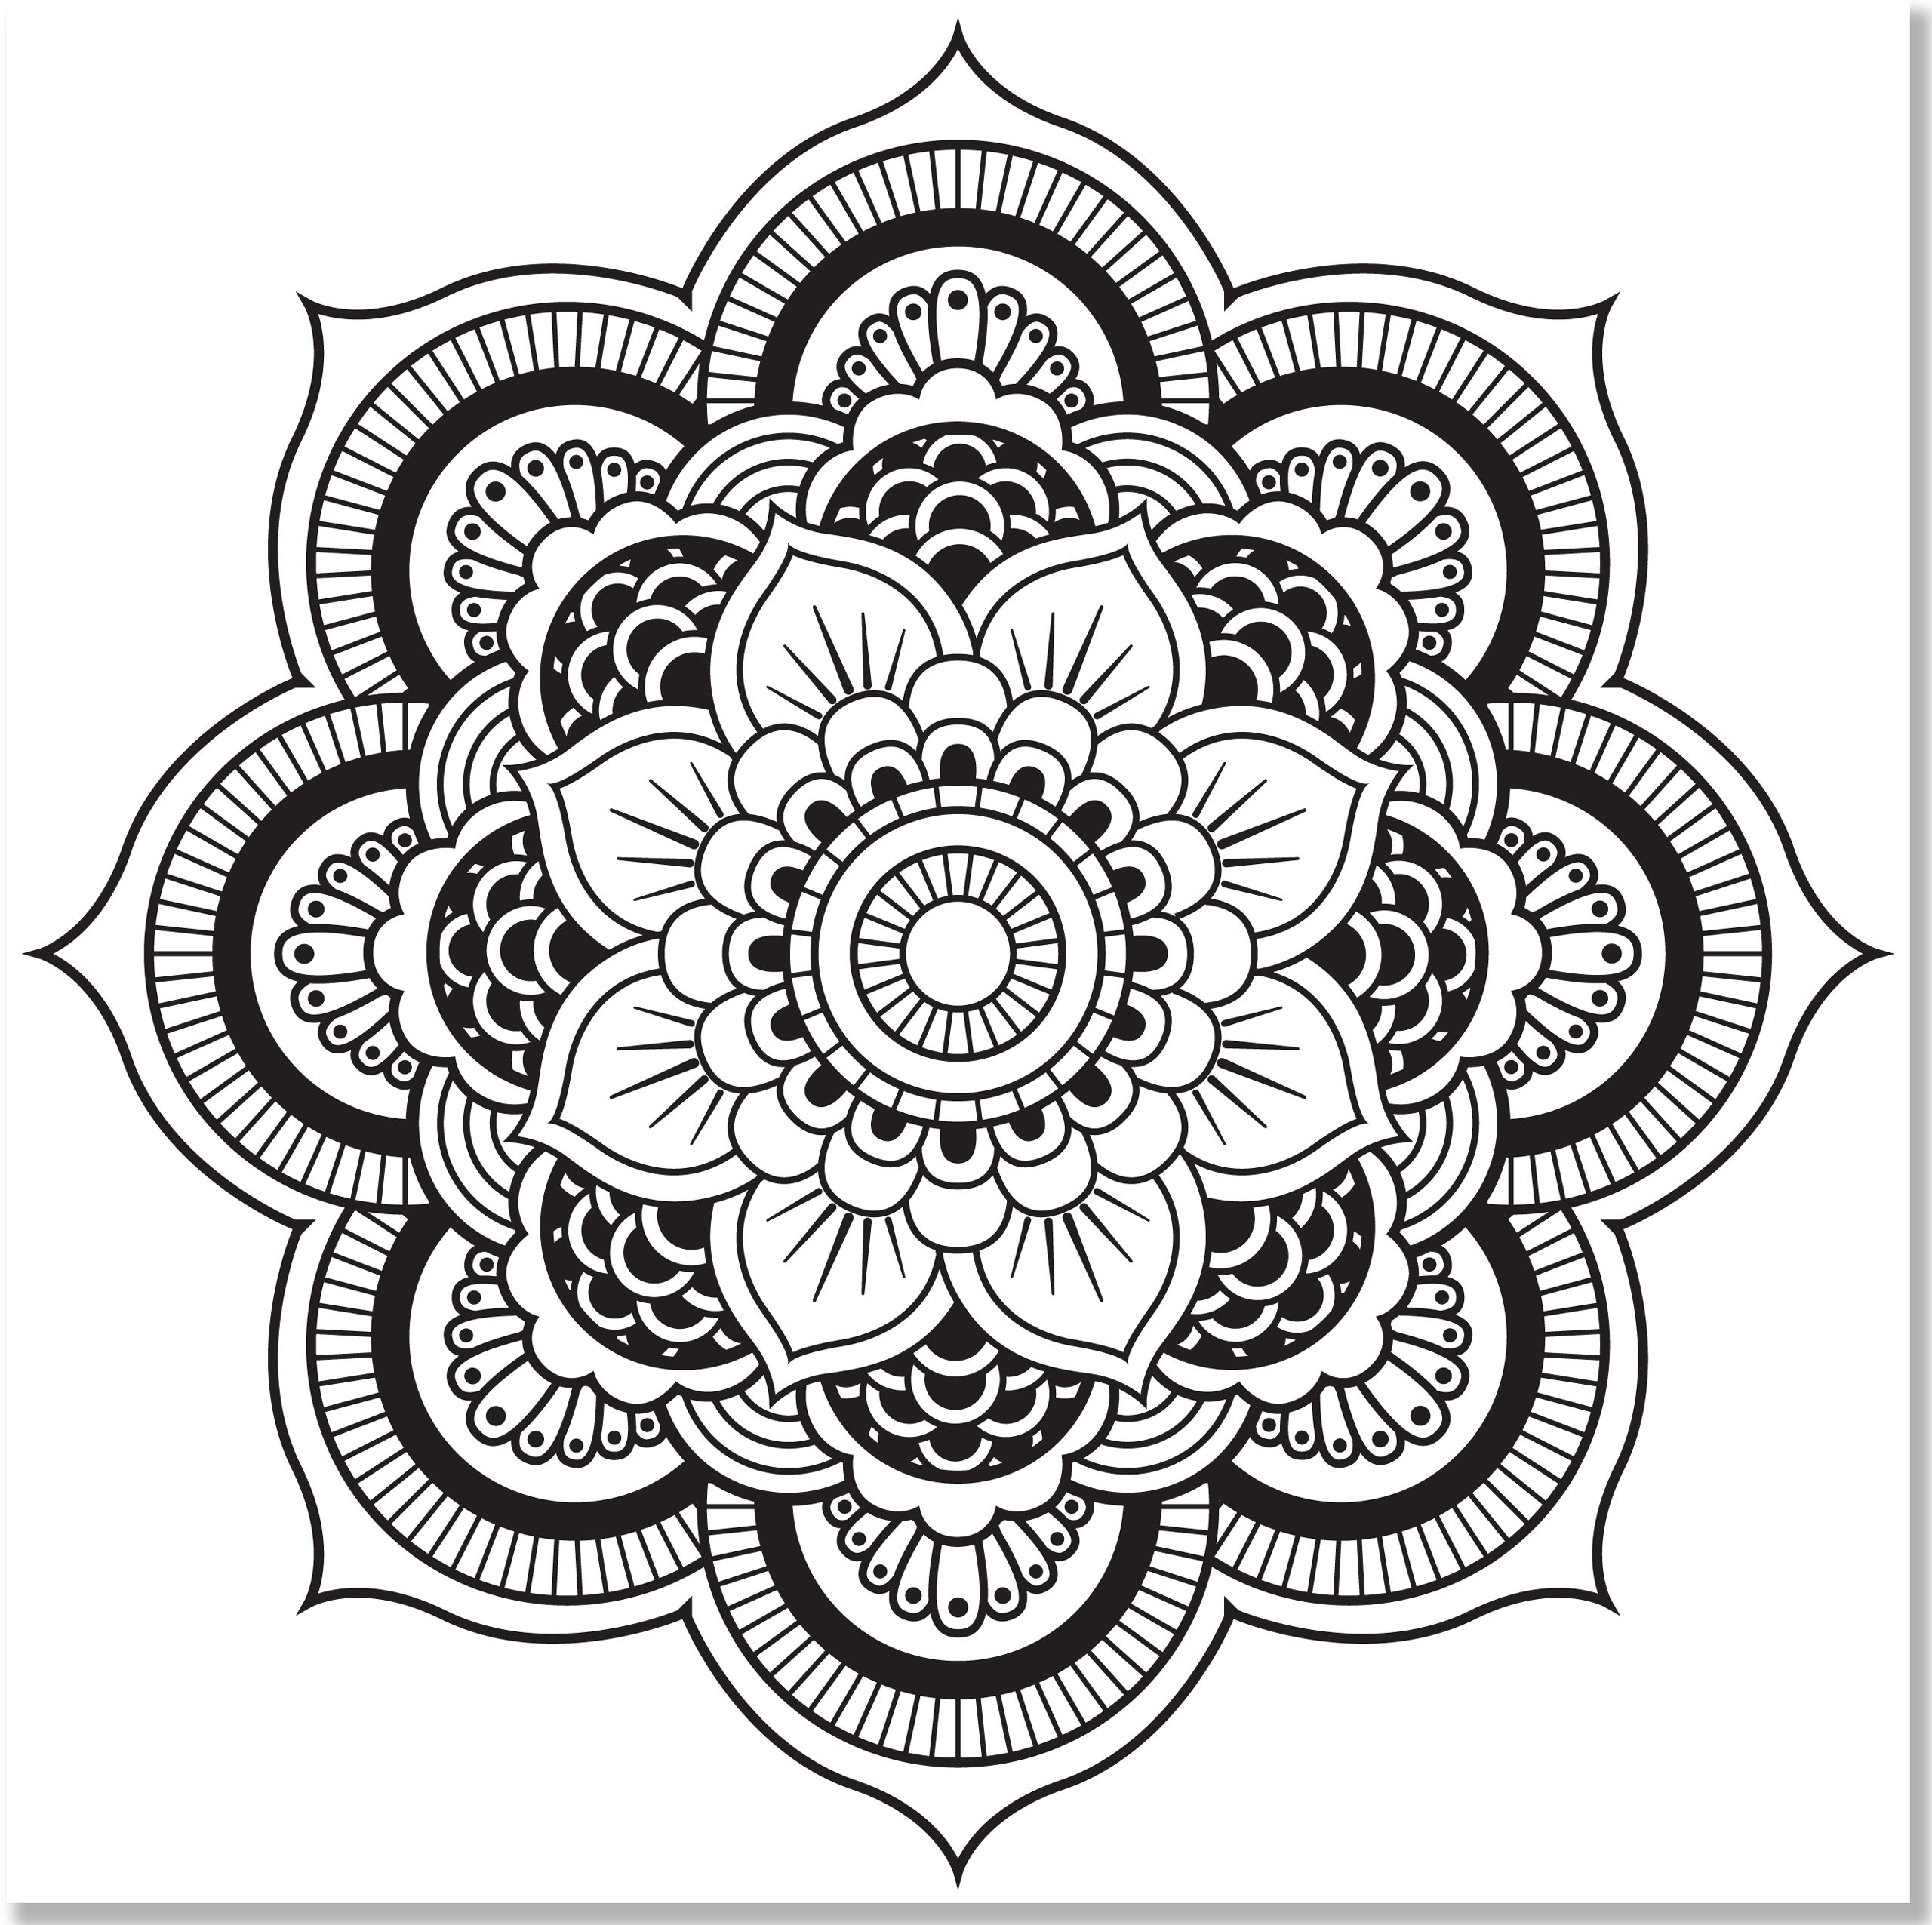 Amazon.com: Mandala Designs Adult Coloring Book (31 stress ...